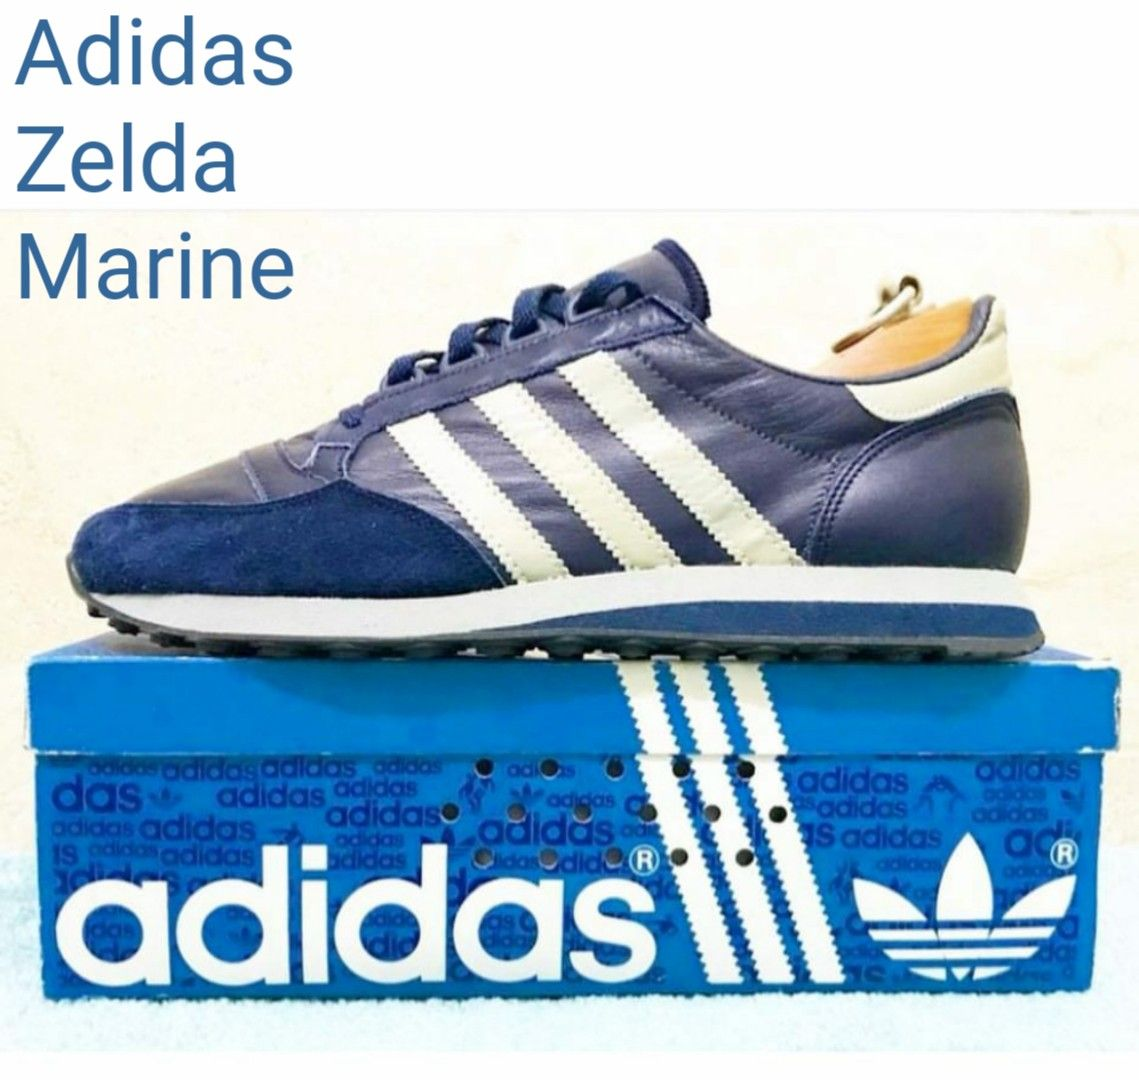 f70edf58e6 Vintage French made Adidas Zelda Marine from 1983 Adidas Og, Adidas Sneakers,  Football Casuals